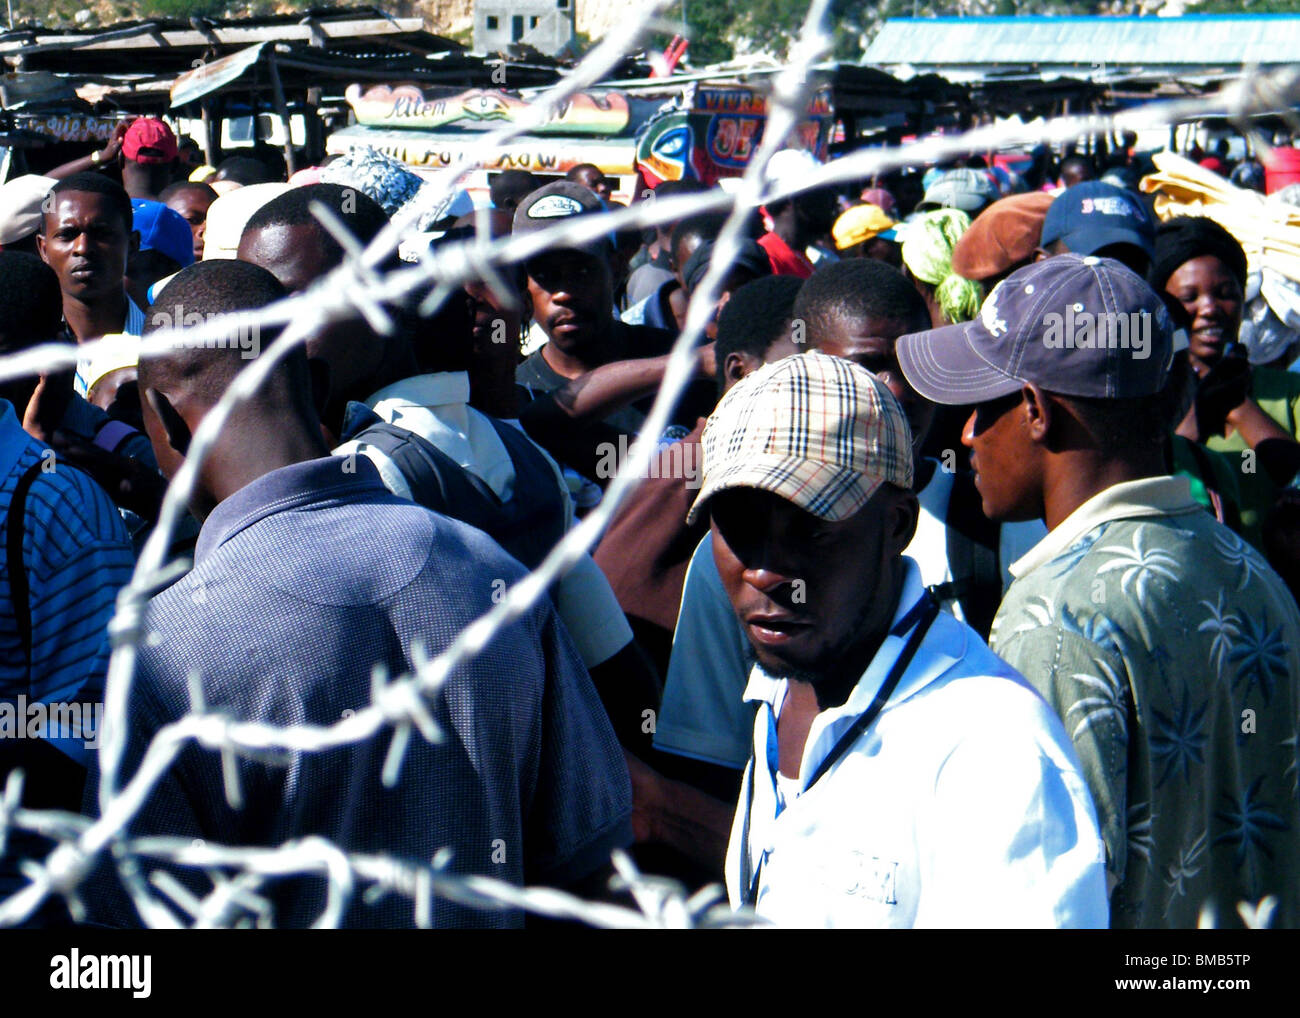 Haitians crowd the gates at the Dominican Republic border (Jimani - Malpasse) after the Haiti earthquake - Stock Image